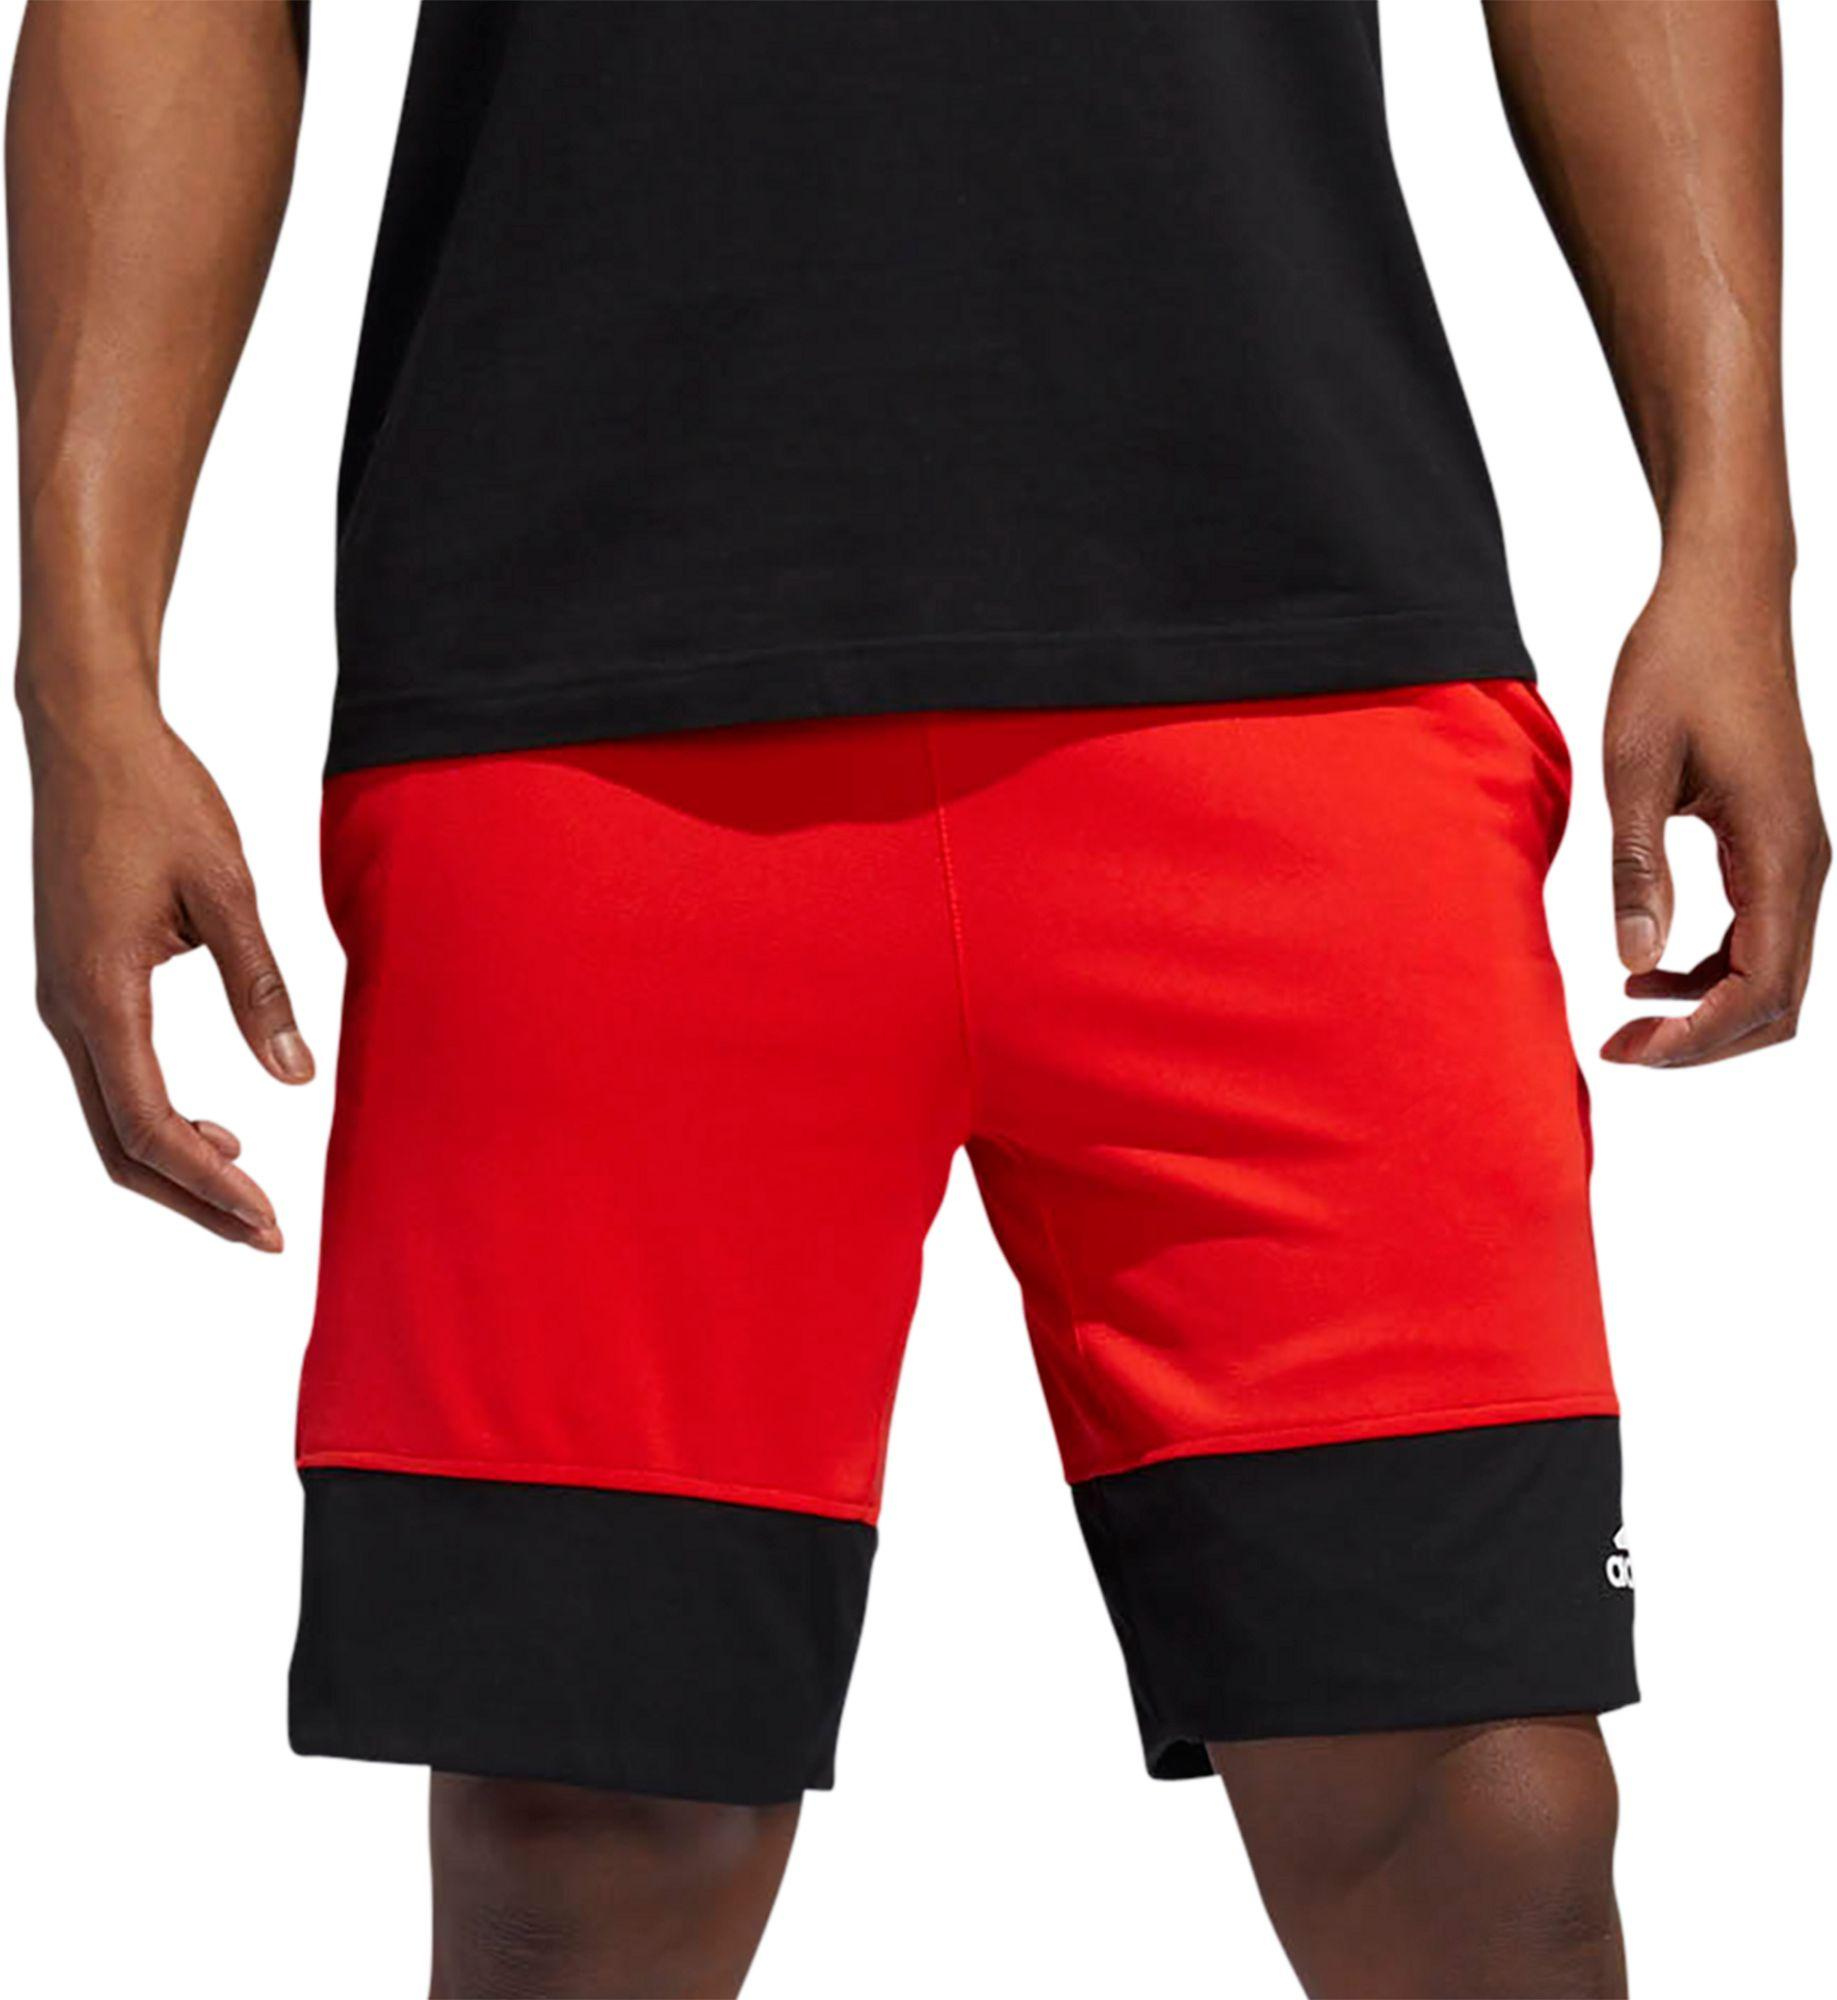 a05470f580 Adidas - Red Pro Madness Basketball Shorts for Men - Lyst. View fullscreen